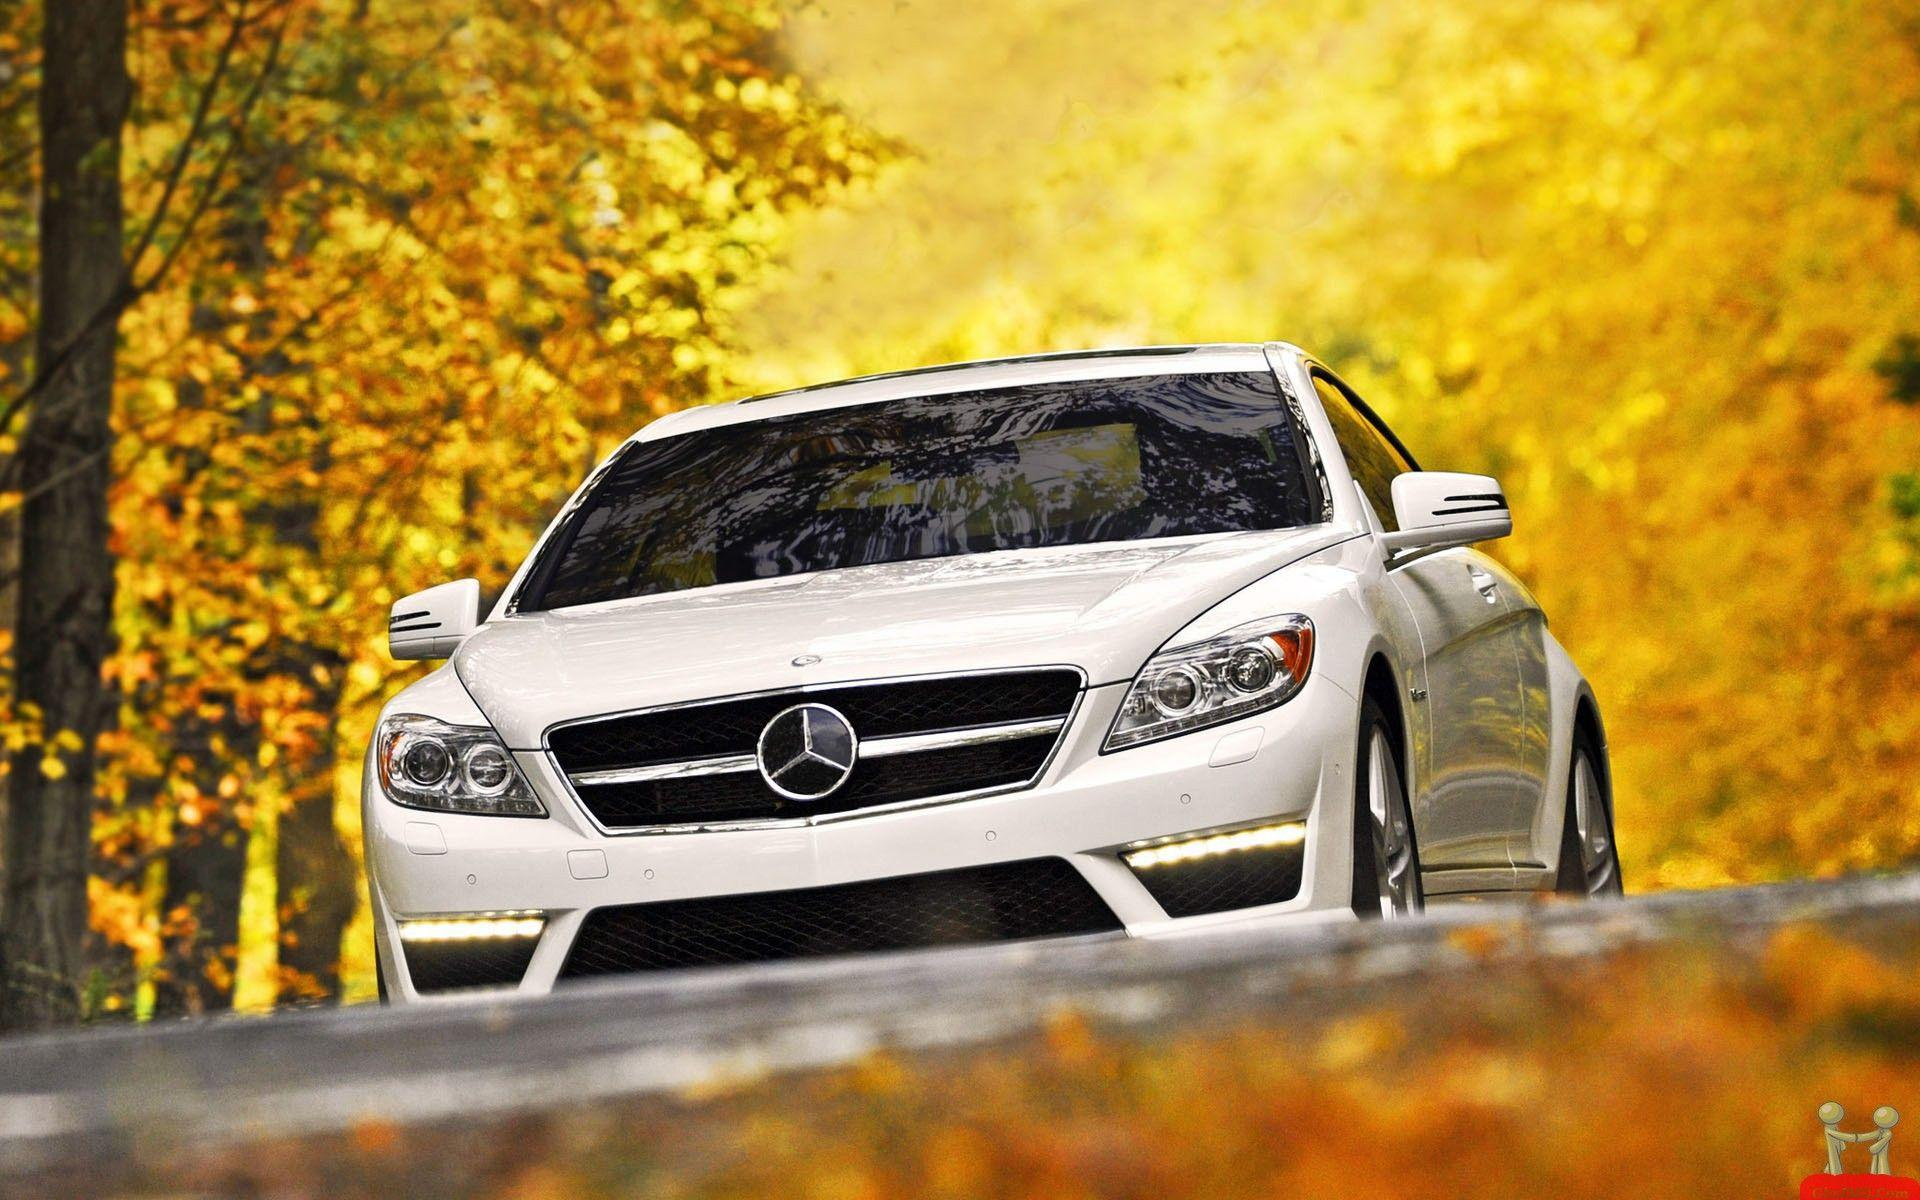 Mercedes Benz HD Wallpapers